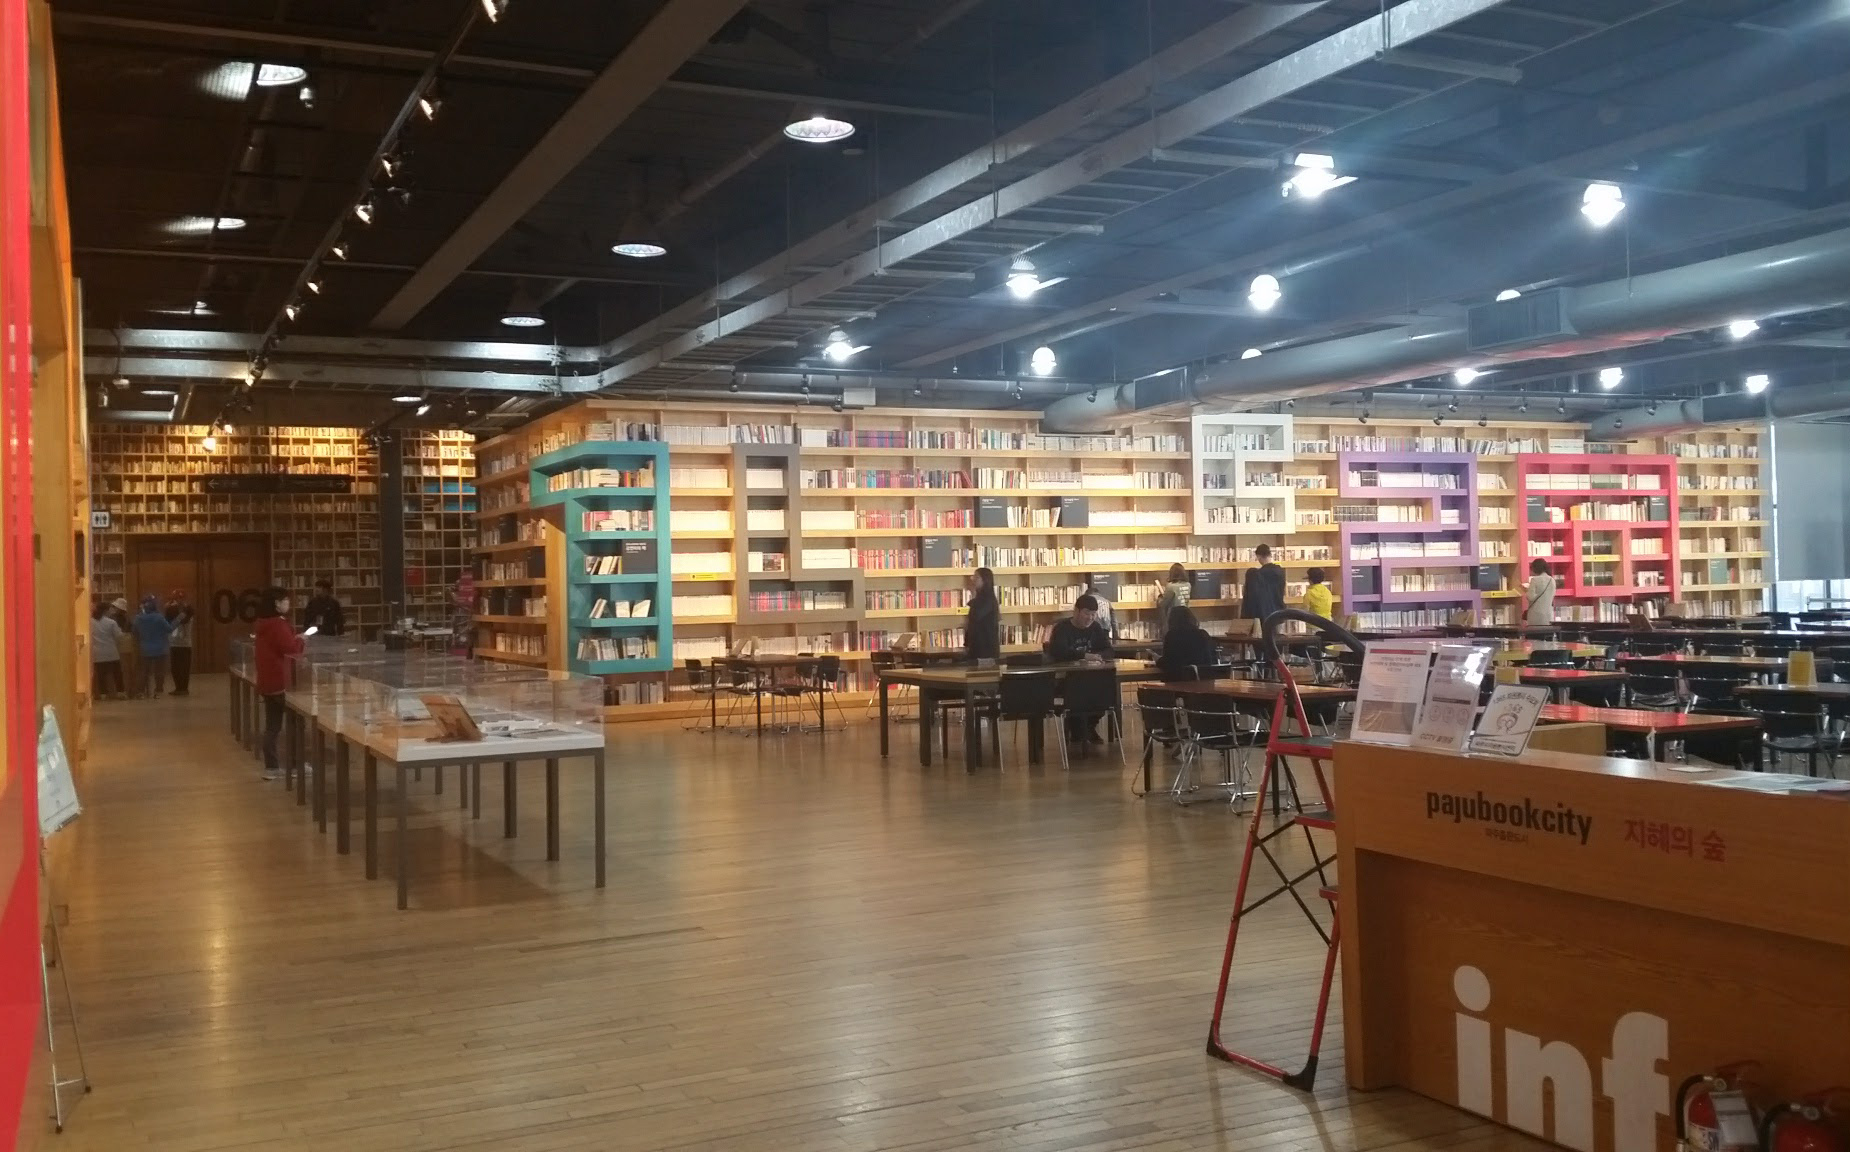 Paju - Book City